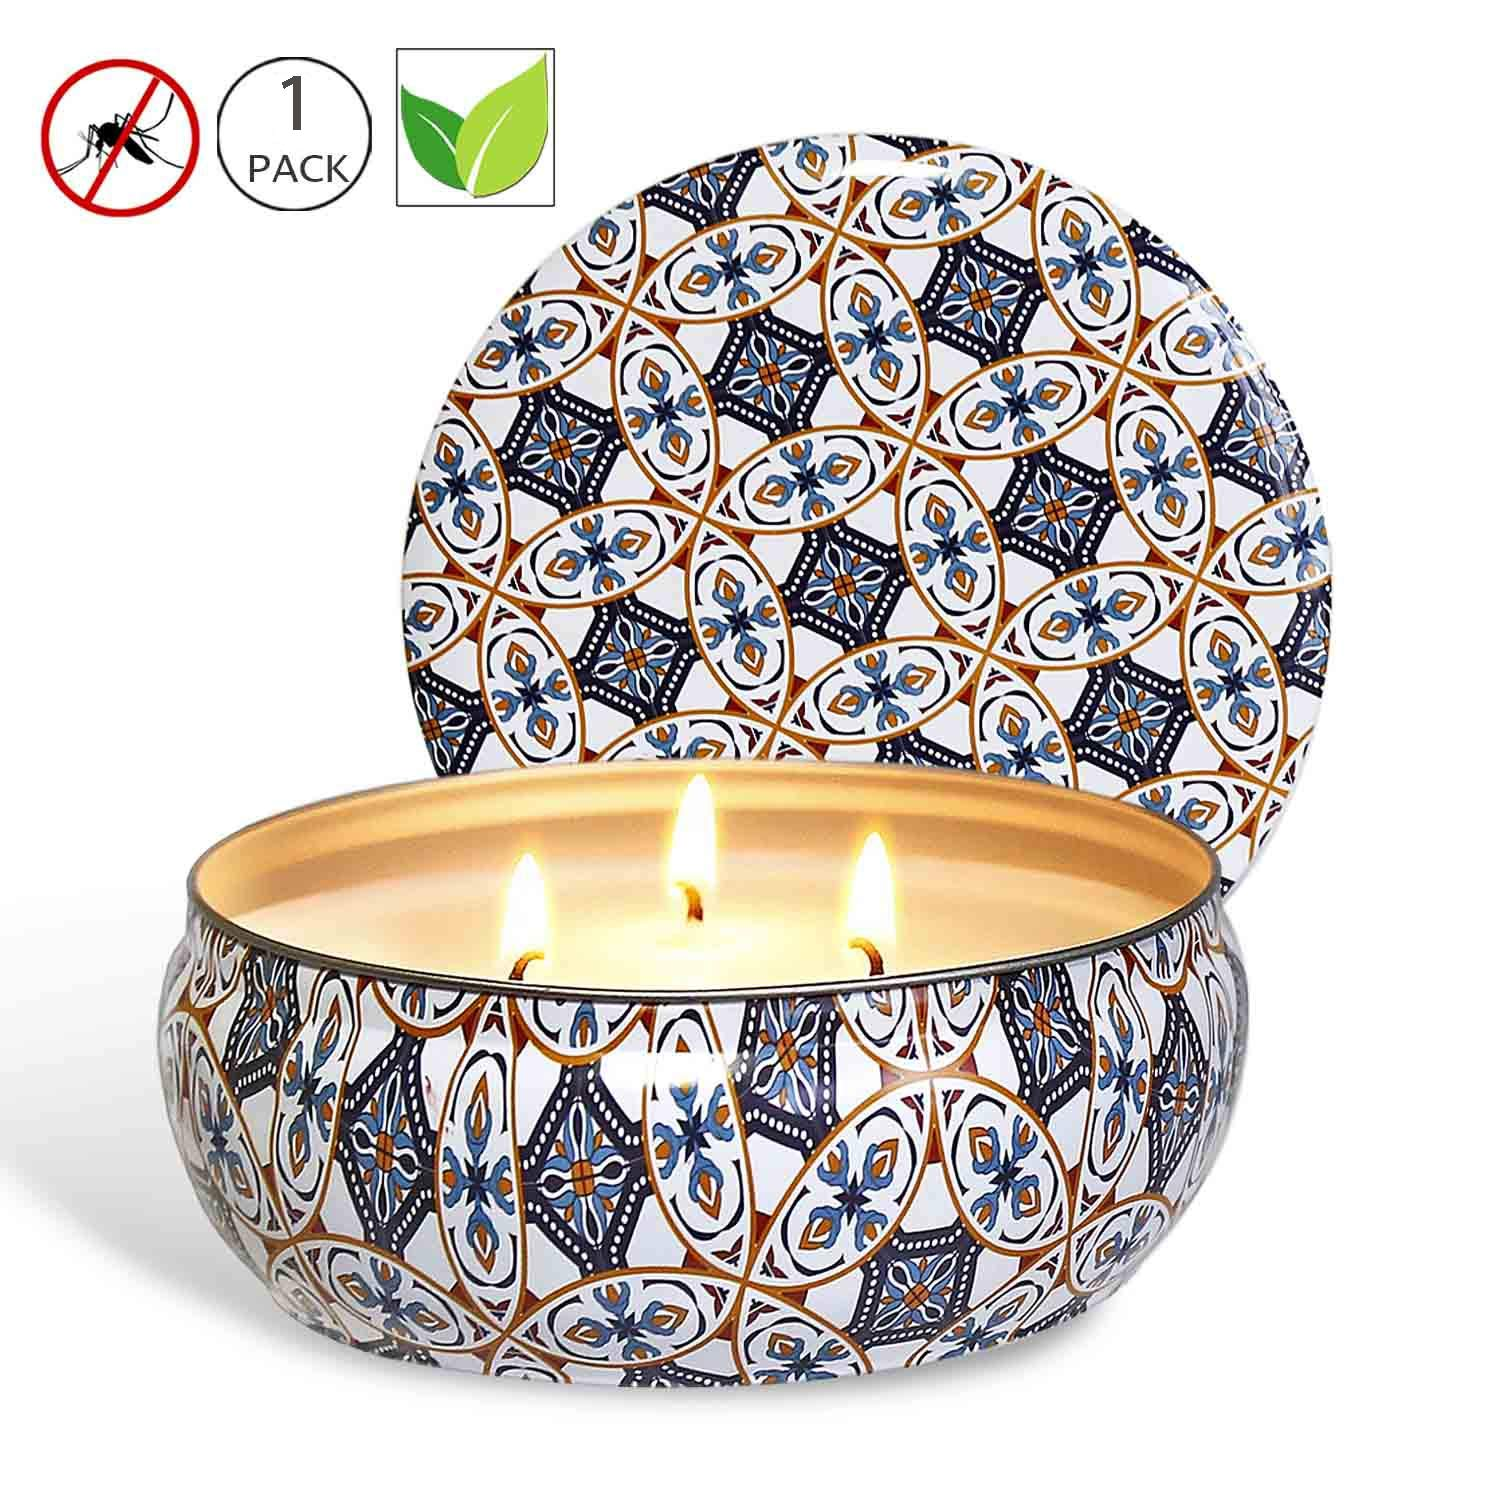 YIH Citronella Candle Scented Soy Wax 3 Wick Tin, 75 Hour Burn, Outdoor and Indoor